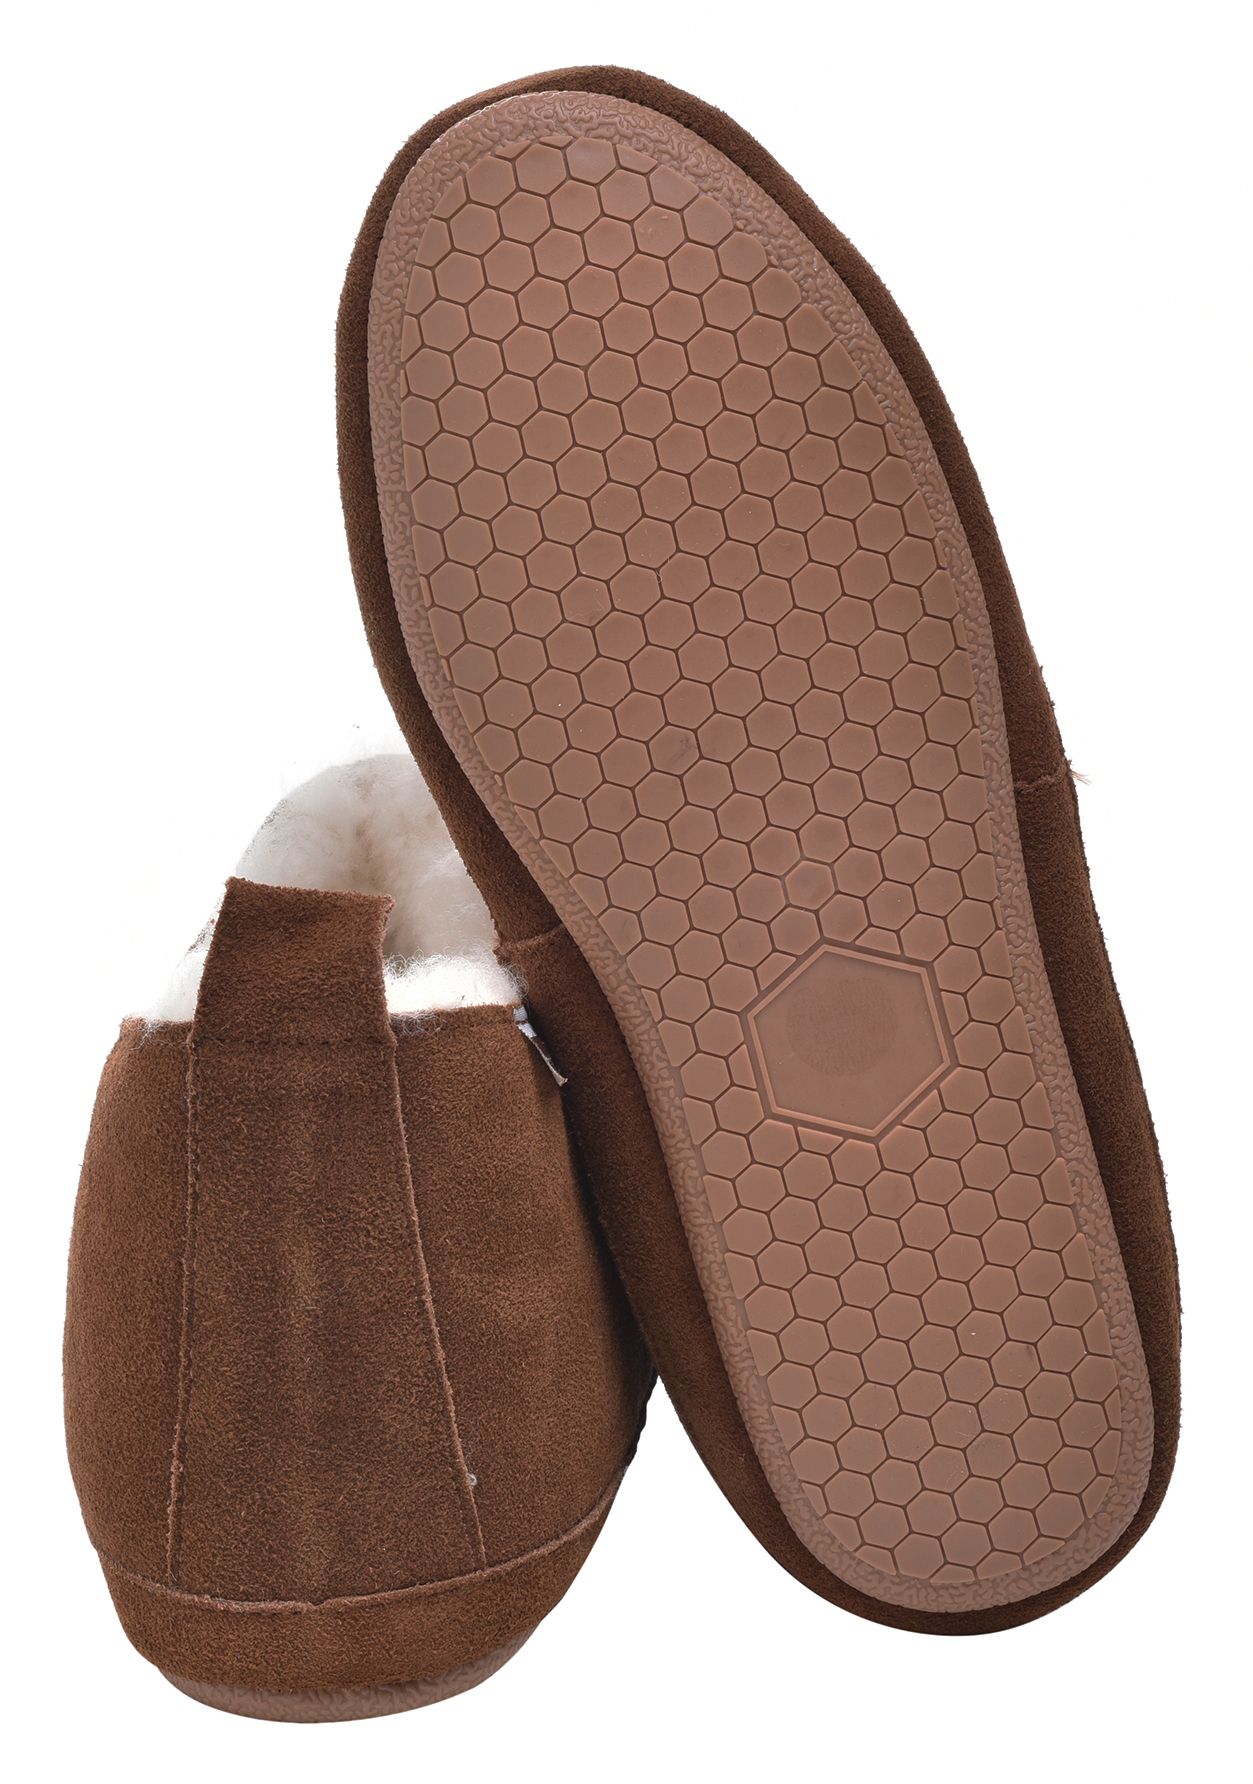 Lambland Mens High Quality Full Sheepskin Boot Slippers with Gum Rubber Sole